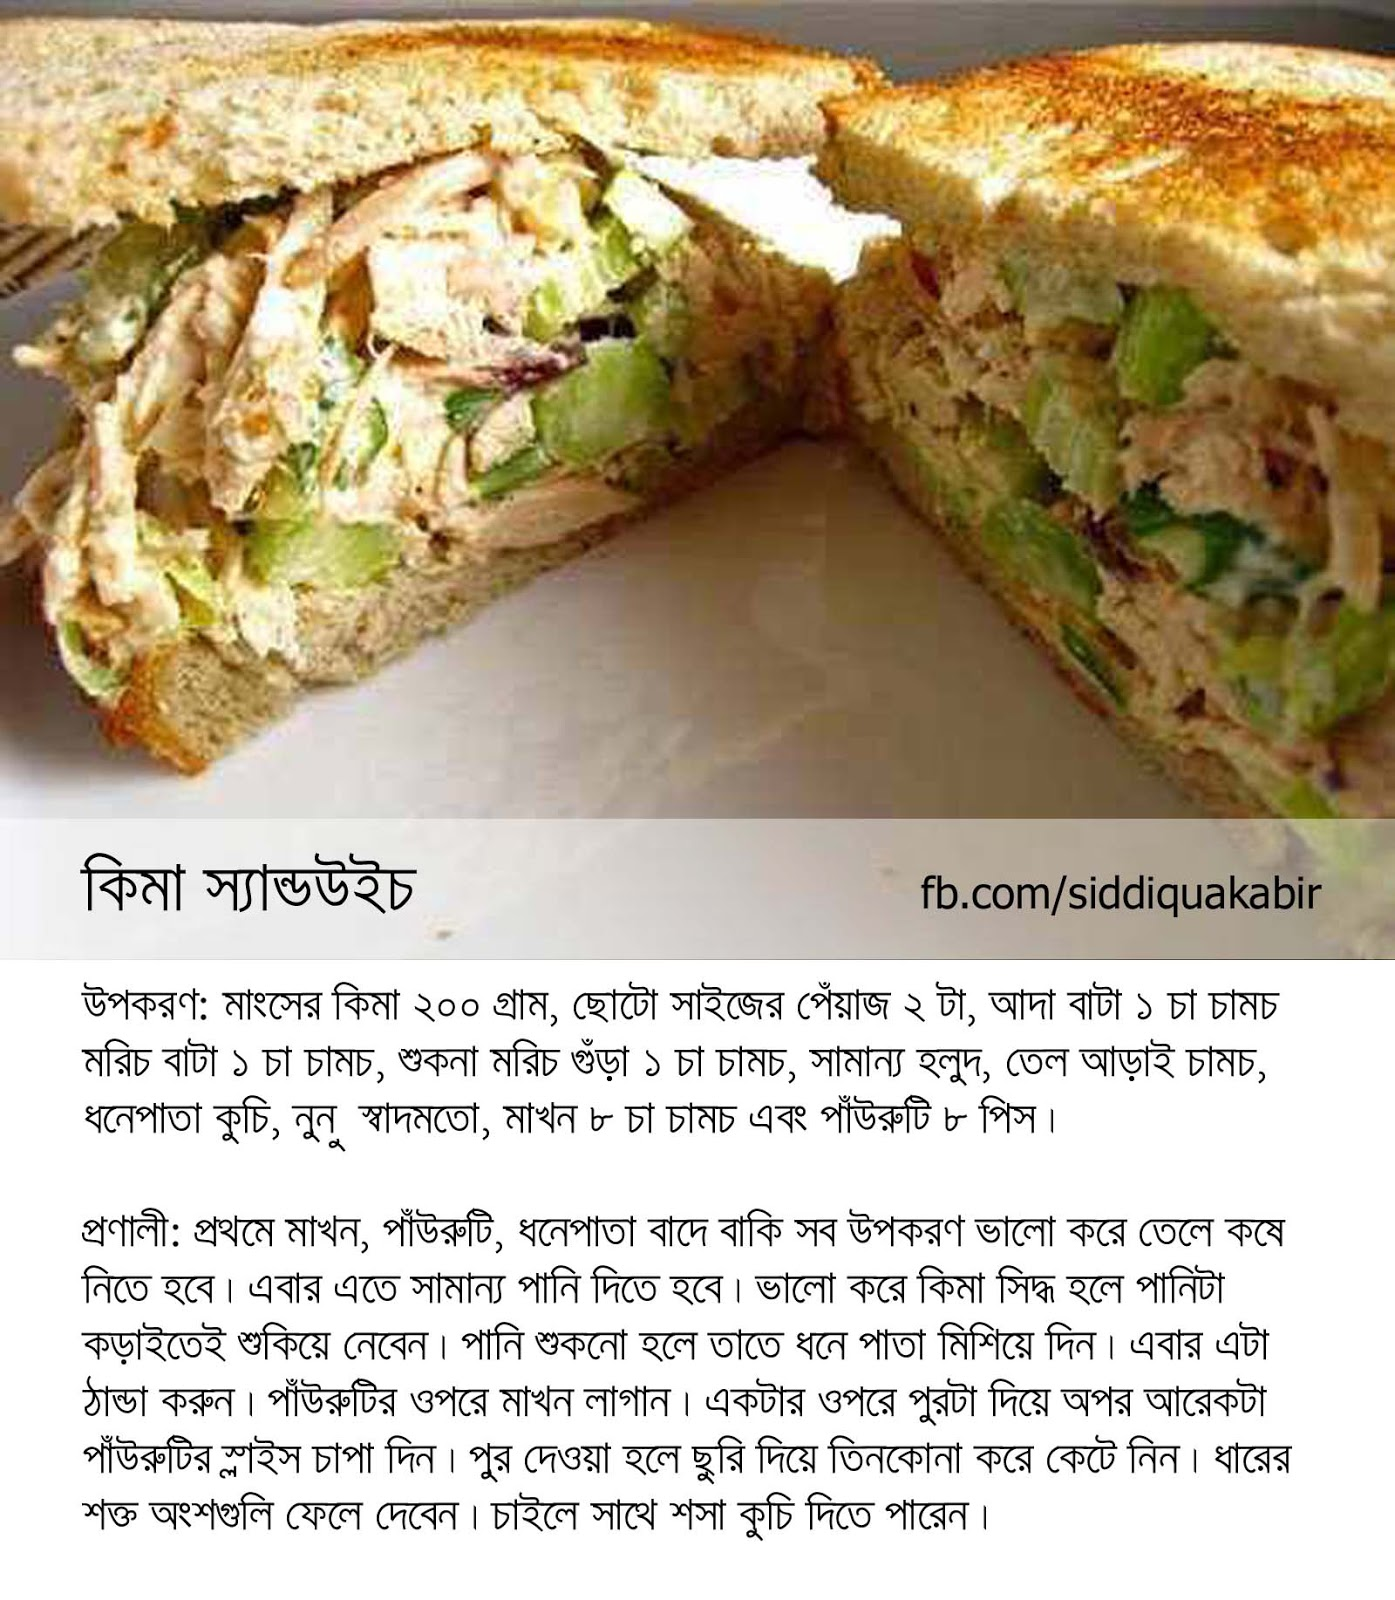 Bangali foods snack food recipes in bengali bengali kima sandwich recipe minced meat sandwich forumfinder Choice Image